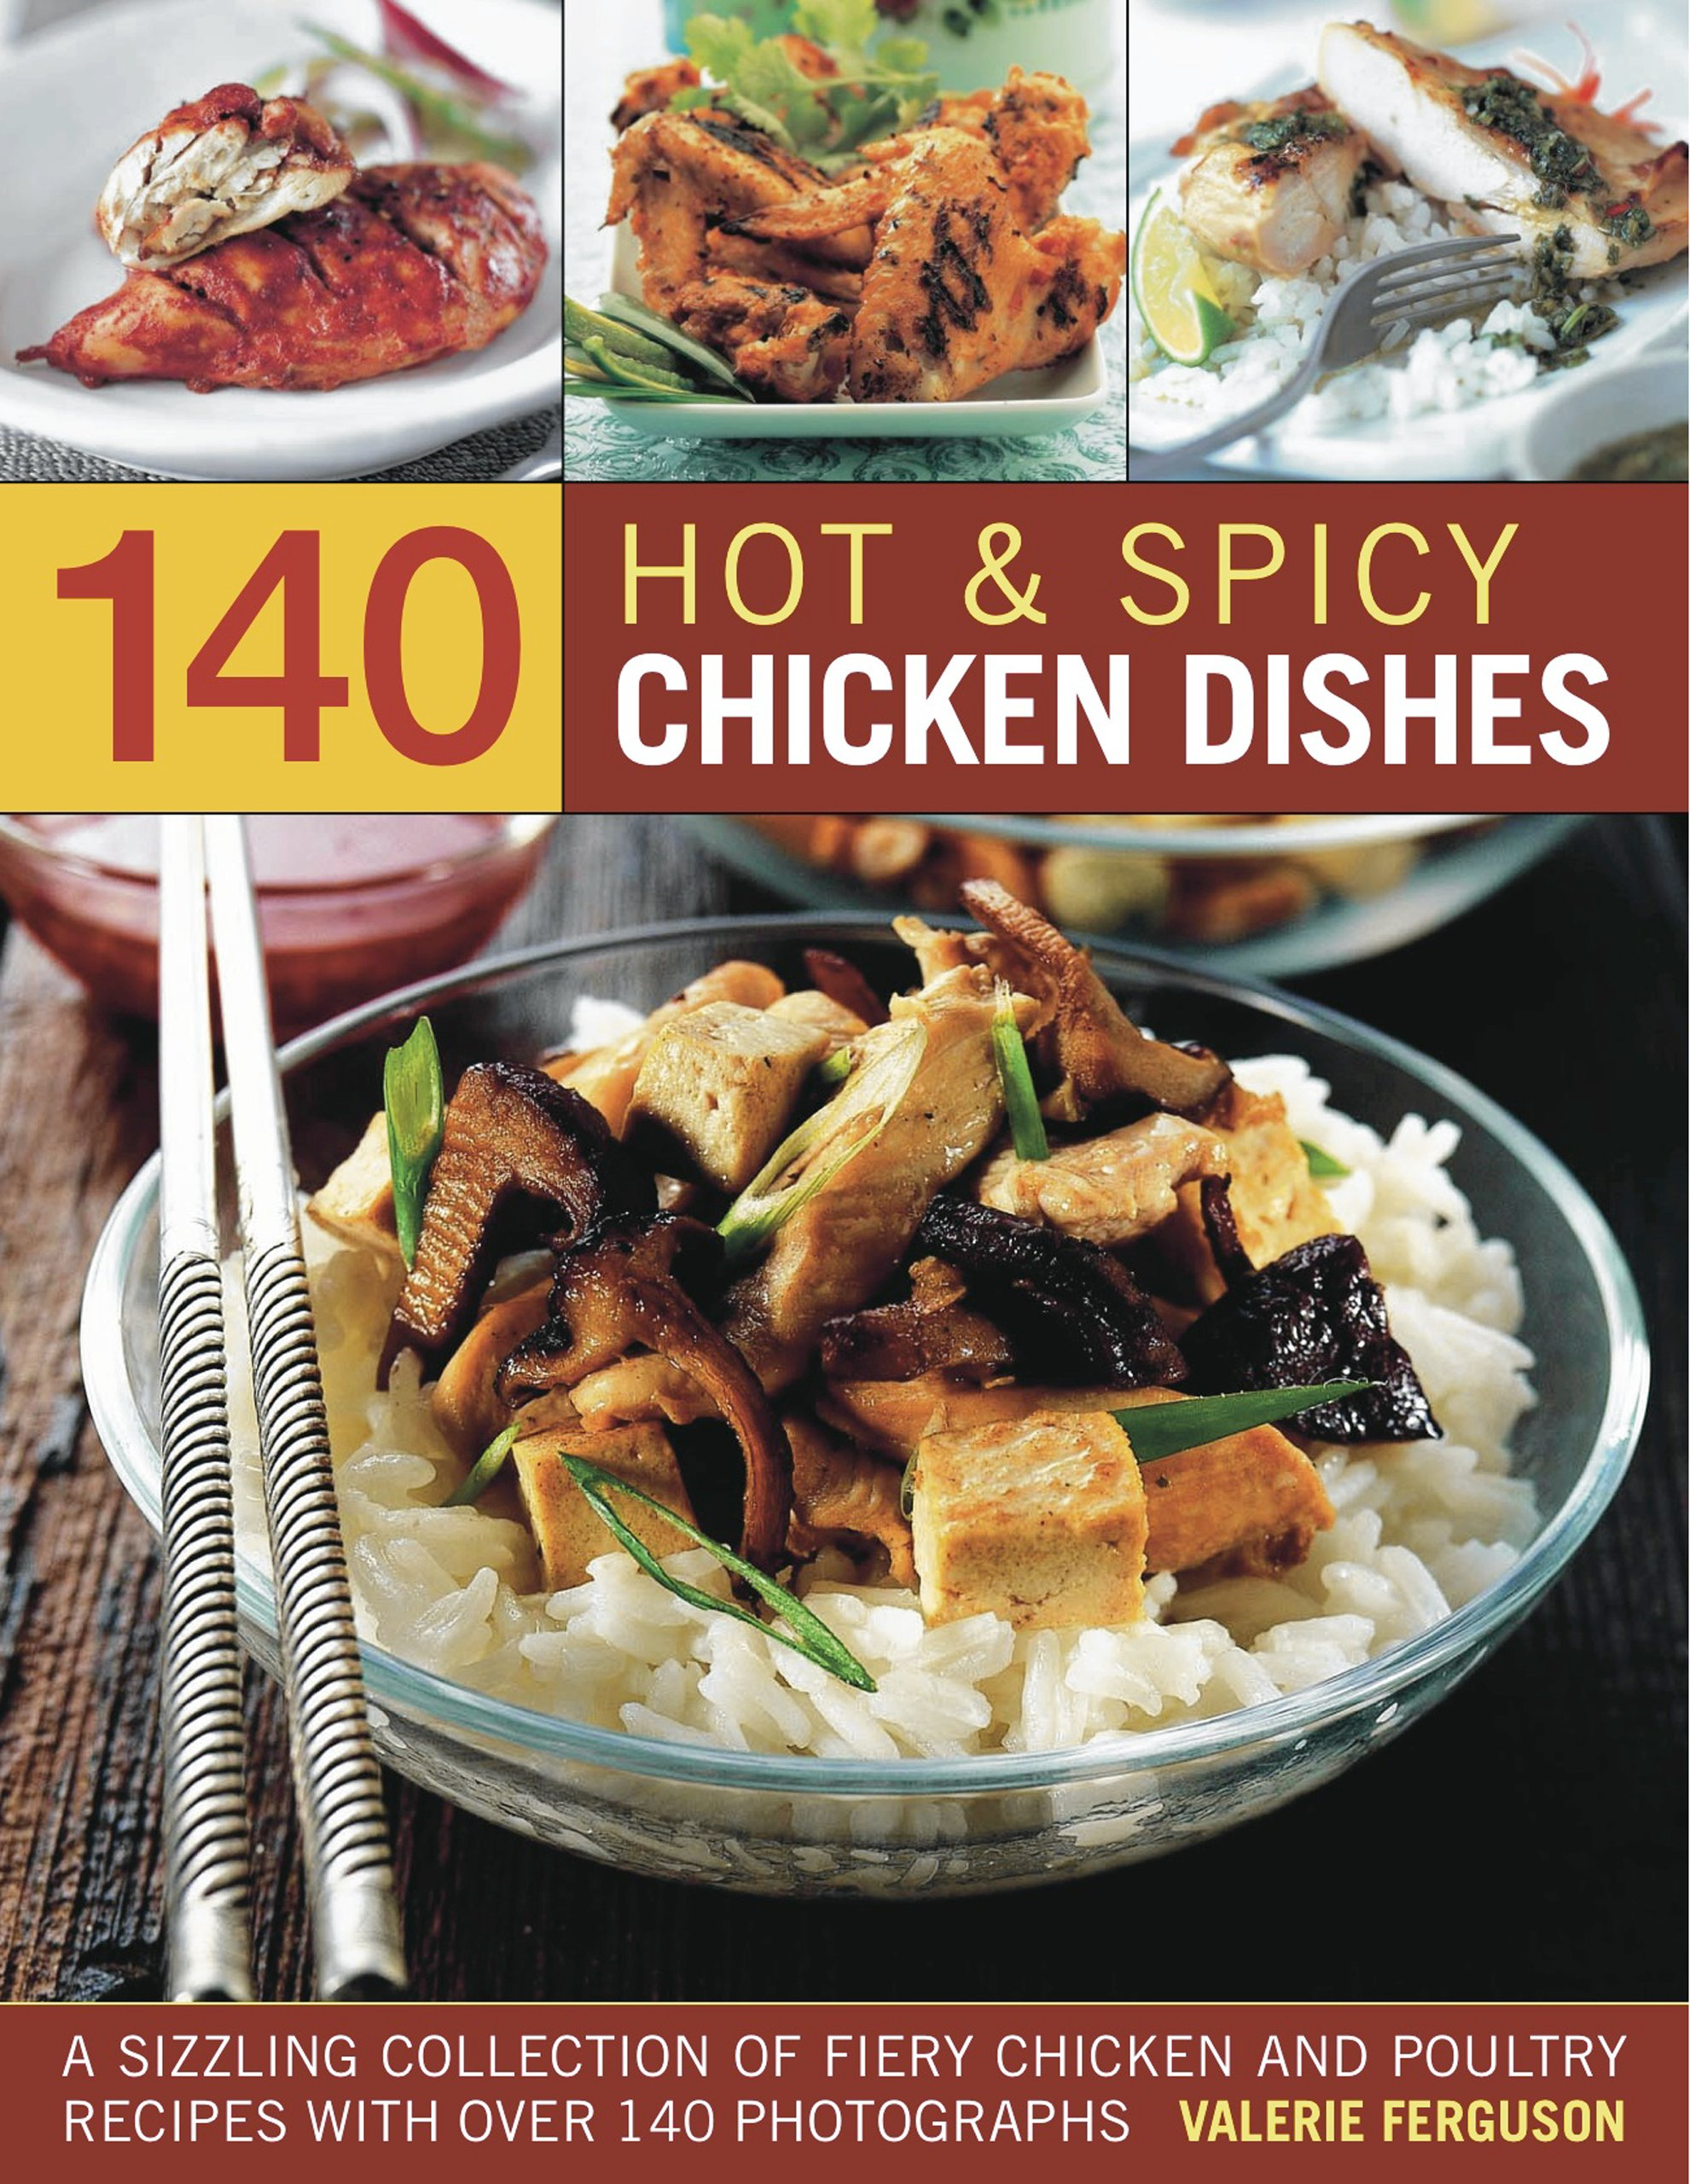 140 Hot & Spicy Chicken Dishes: A Sizzling Collection Of Fiery Chicken And Polutry Recipes